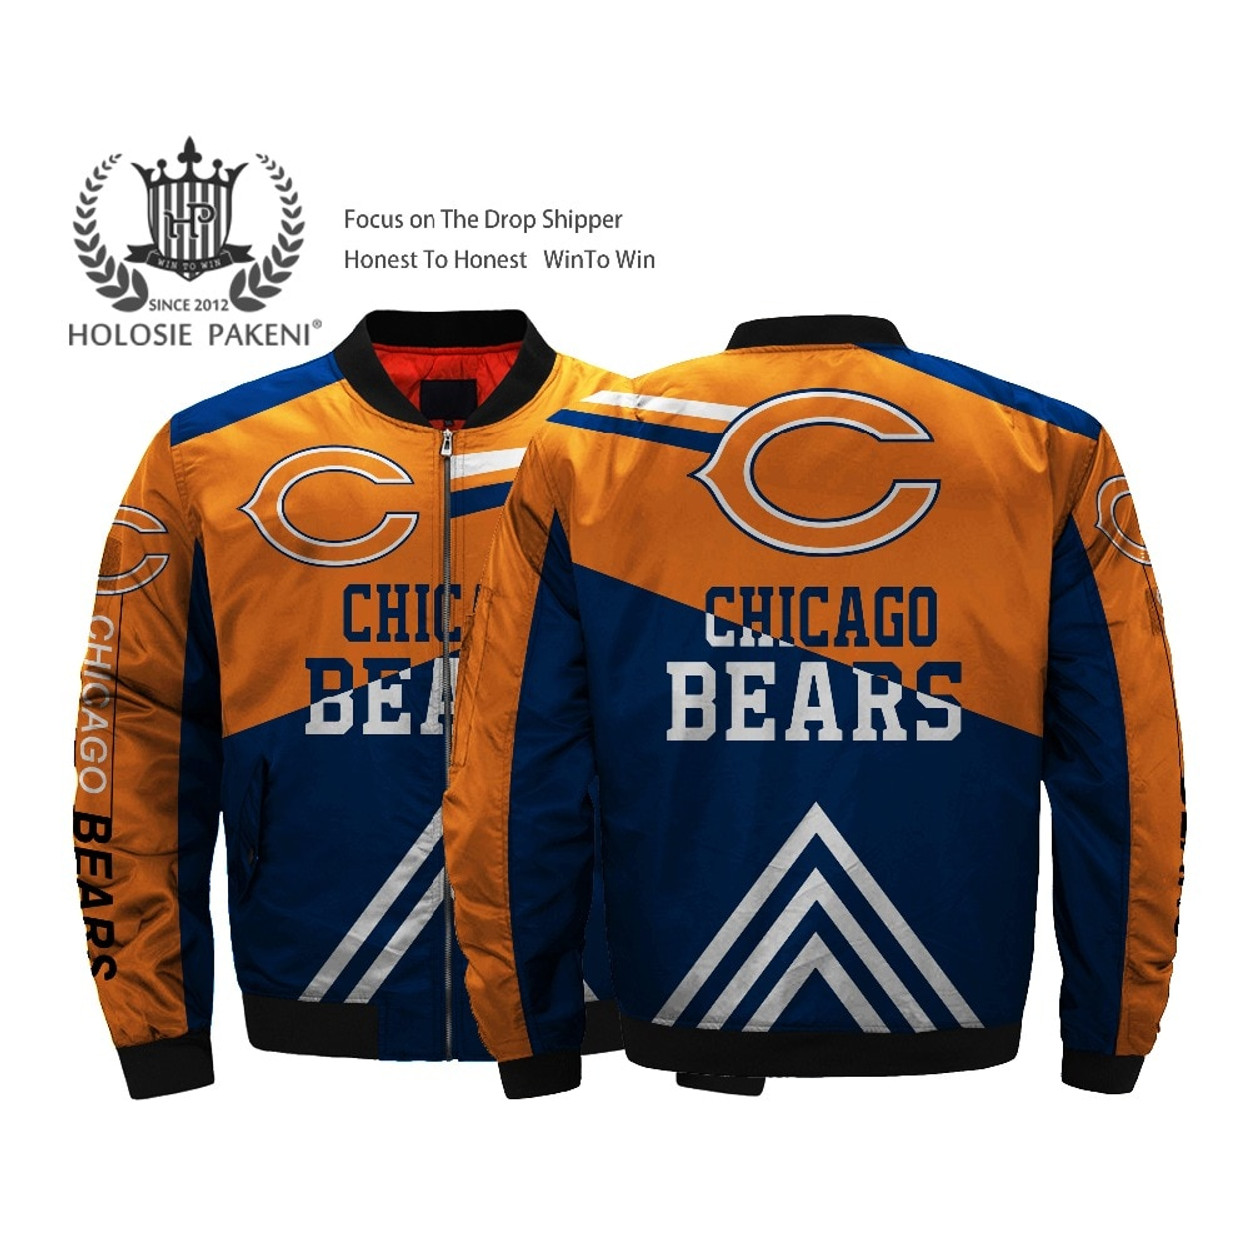 b3797bac6   (OFFICIALLY-LICENSED-N.F.L.CHICAGO-BEARS-JACKETS CLASSIC-BEARS-TEAM-COLORS    OFFICIAL-BEARS-LOGOS